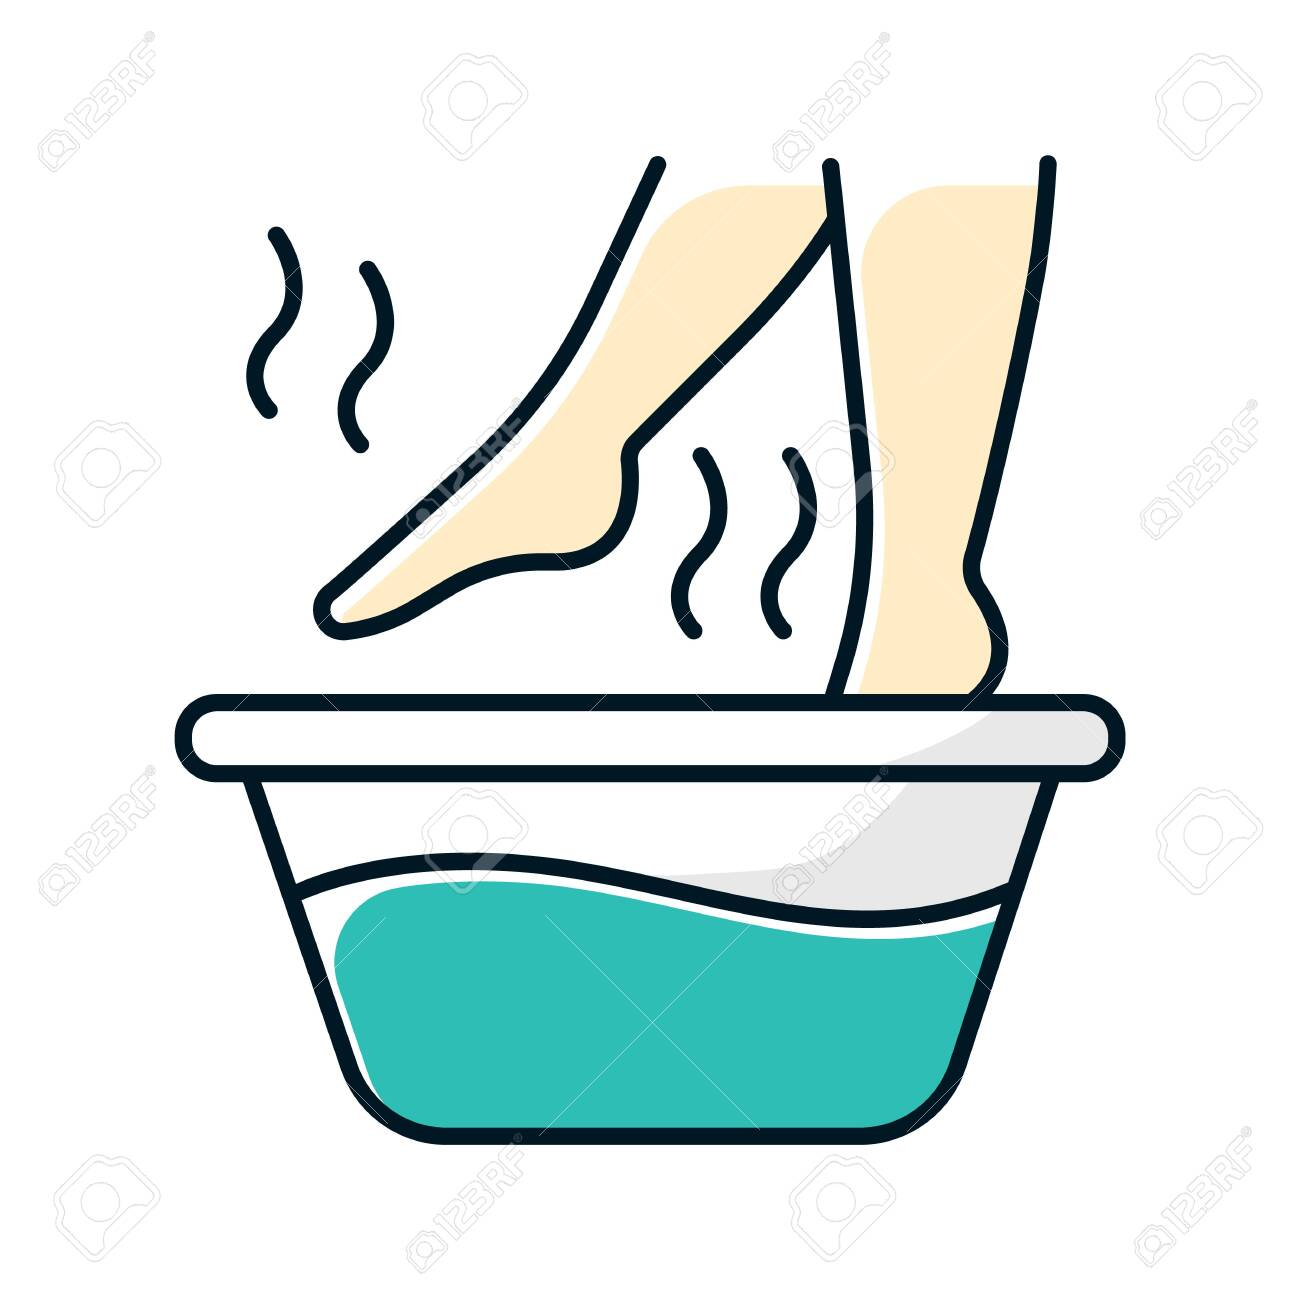 Foot bath color icon. Leg in hot water. Spa treatment. Common cold treatment. Healthcare and skincare. Wellness. Flu infection, influenza virus aid. Sickness help. Isolated vector illustration - 136400865